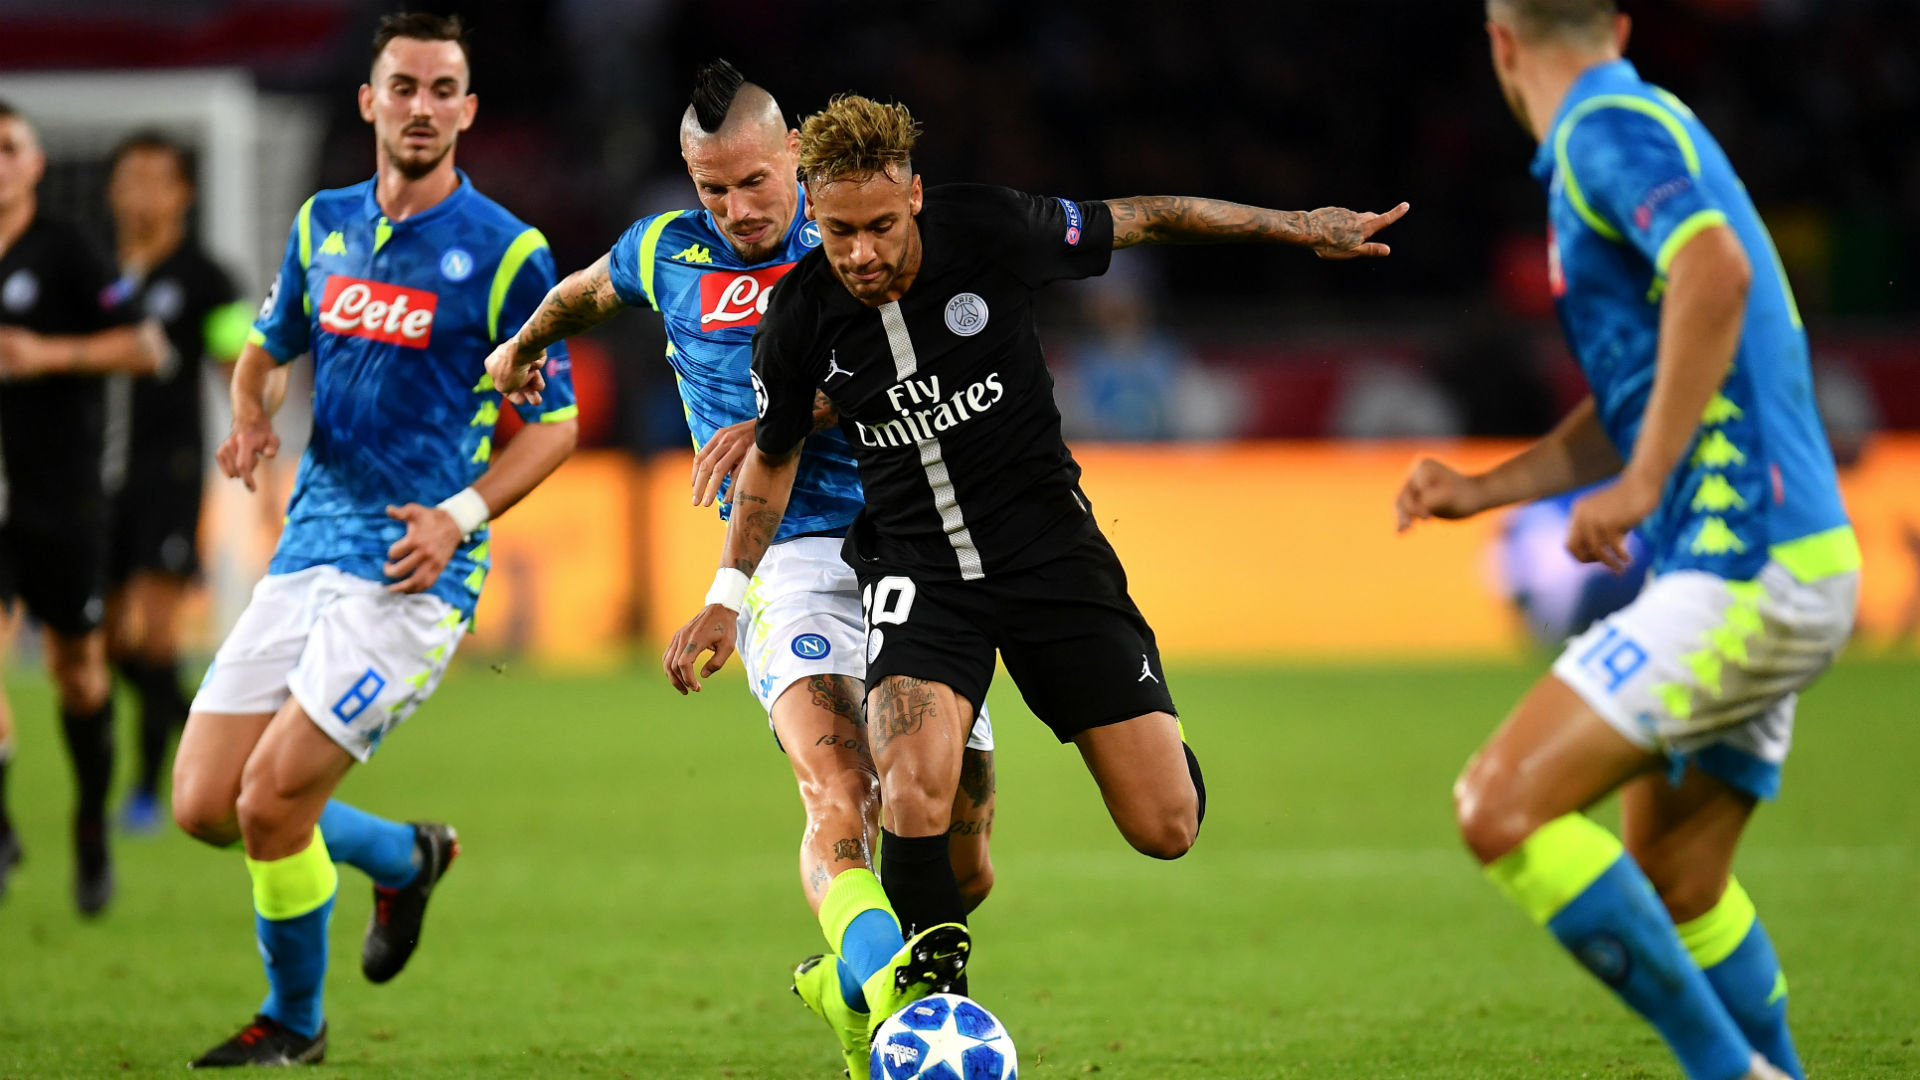 Champions League: Neymar reveals PSG's game plan against Napoli